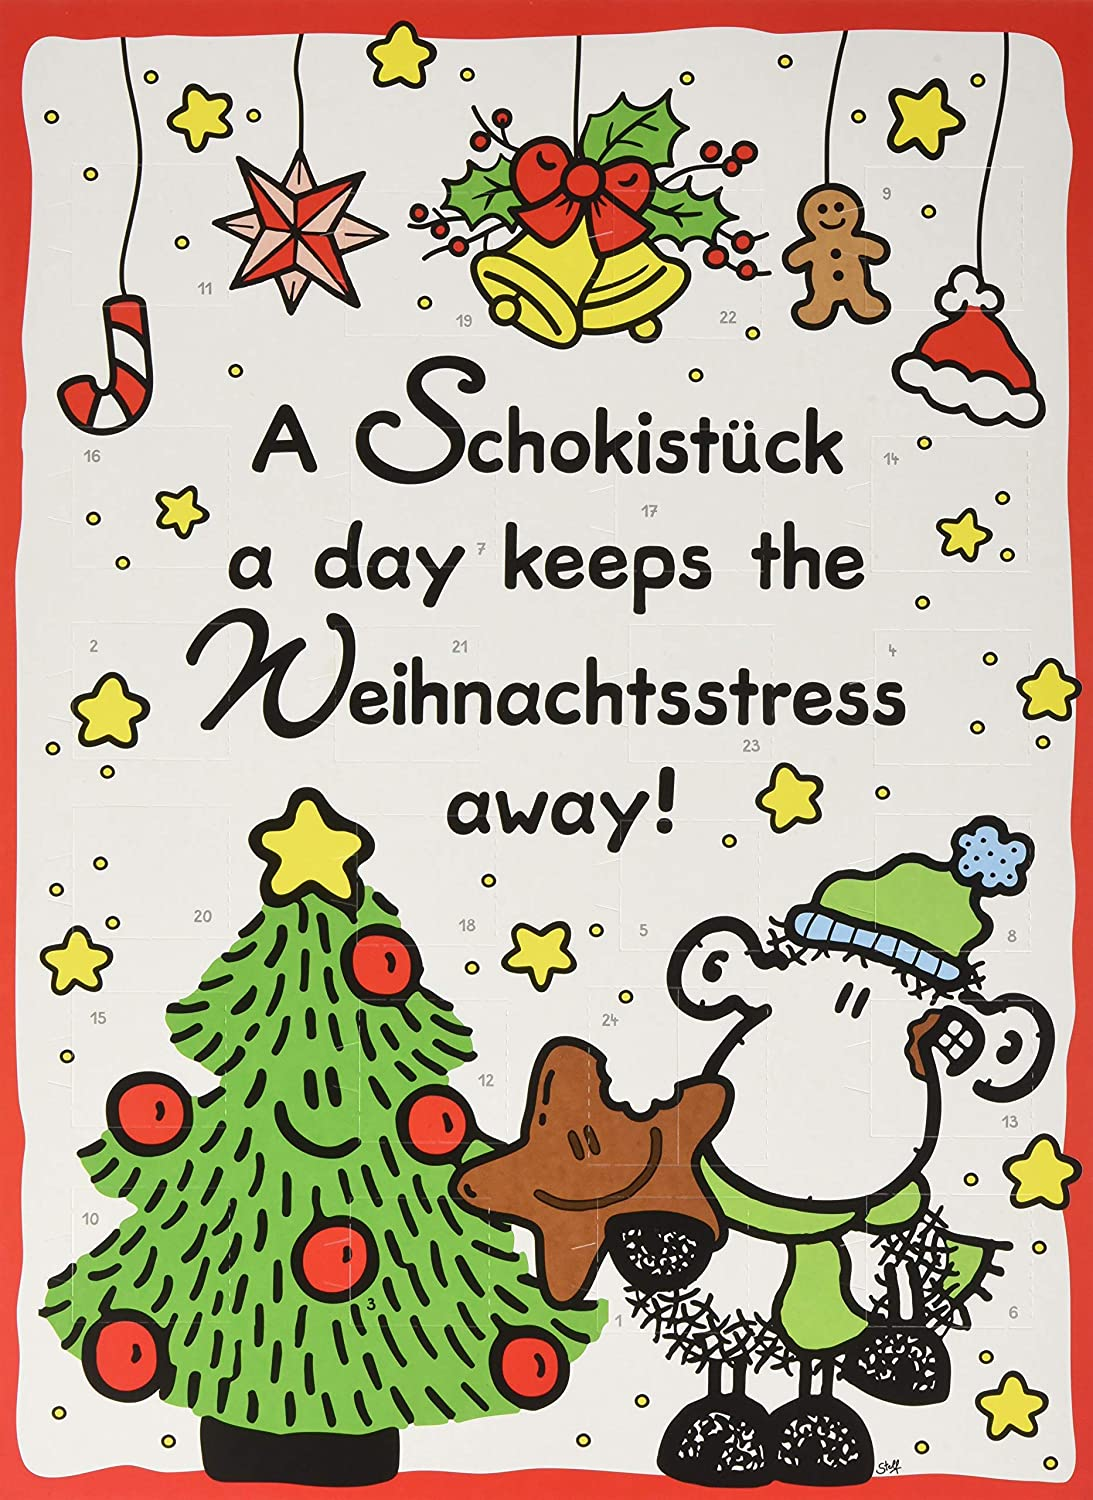 Frohe Weihnachten Sheepworld.Sheepworld 49752 Adventskalender A Schokistück A Day Keeps The Weihnachtsstress Away 1er Pack 1 X 75 G